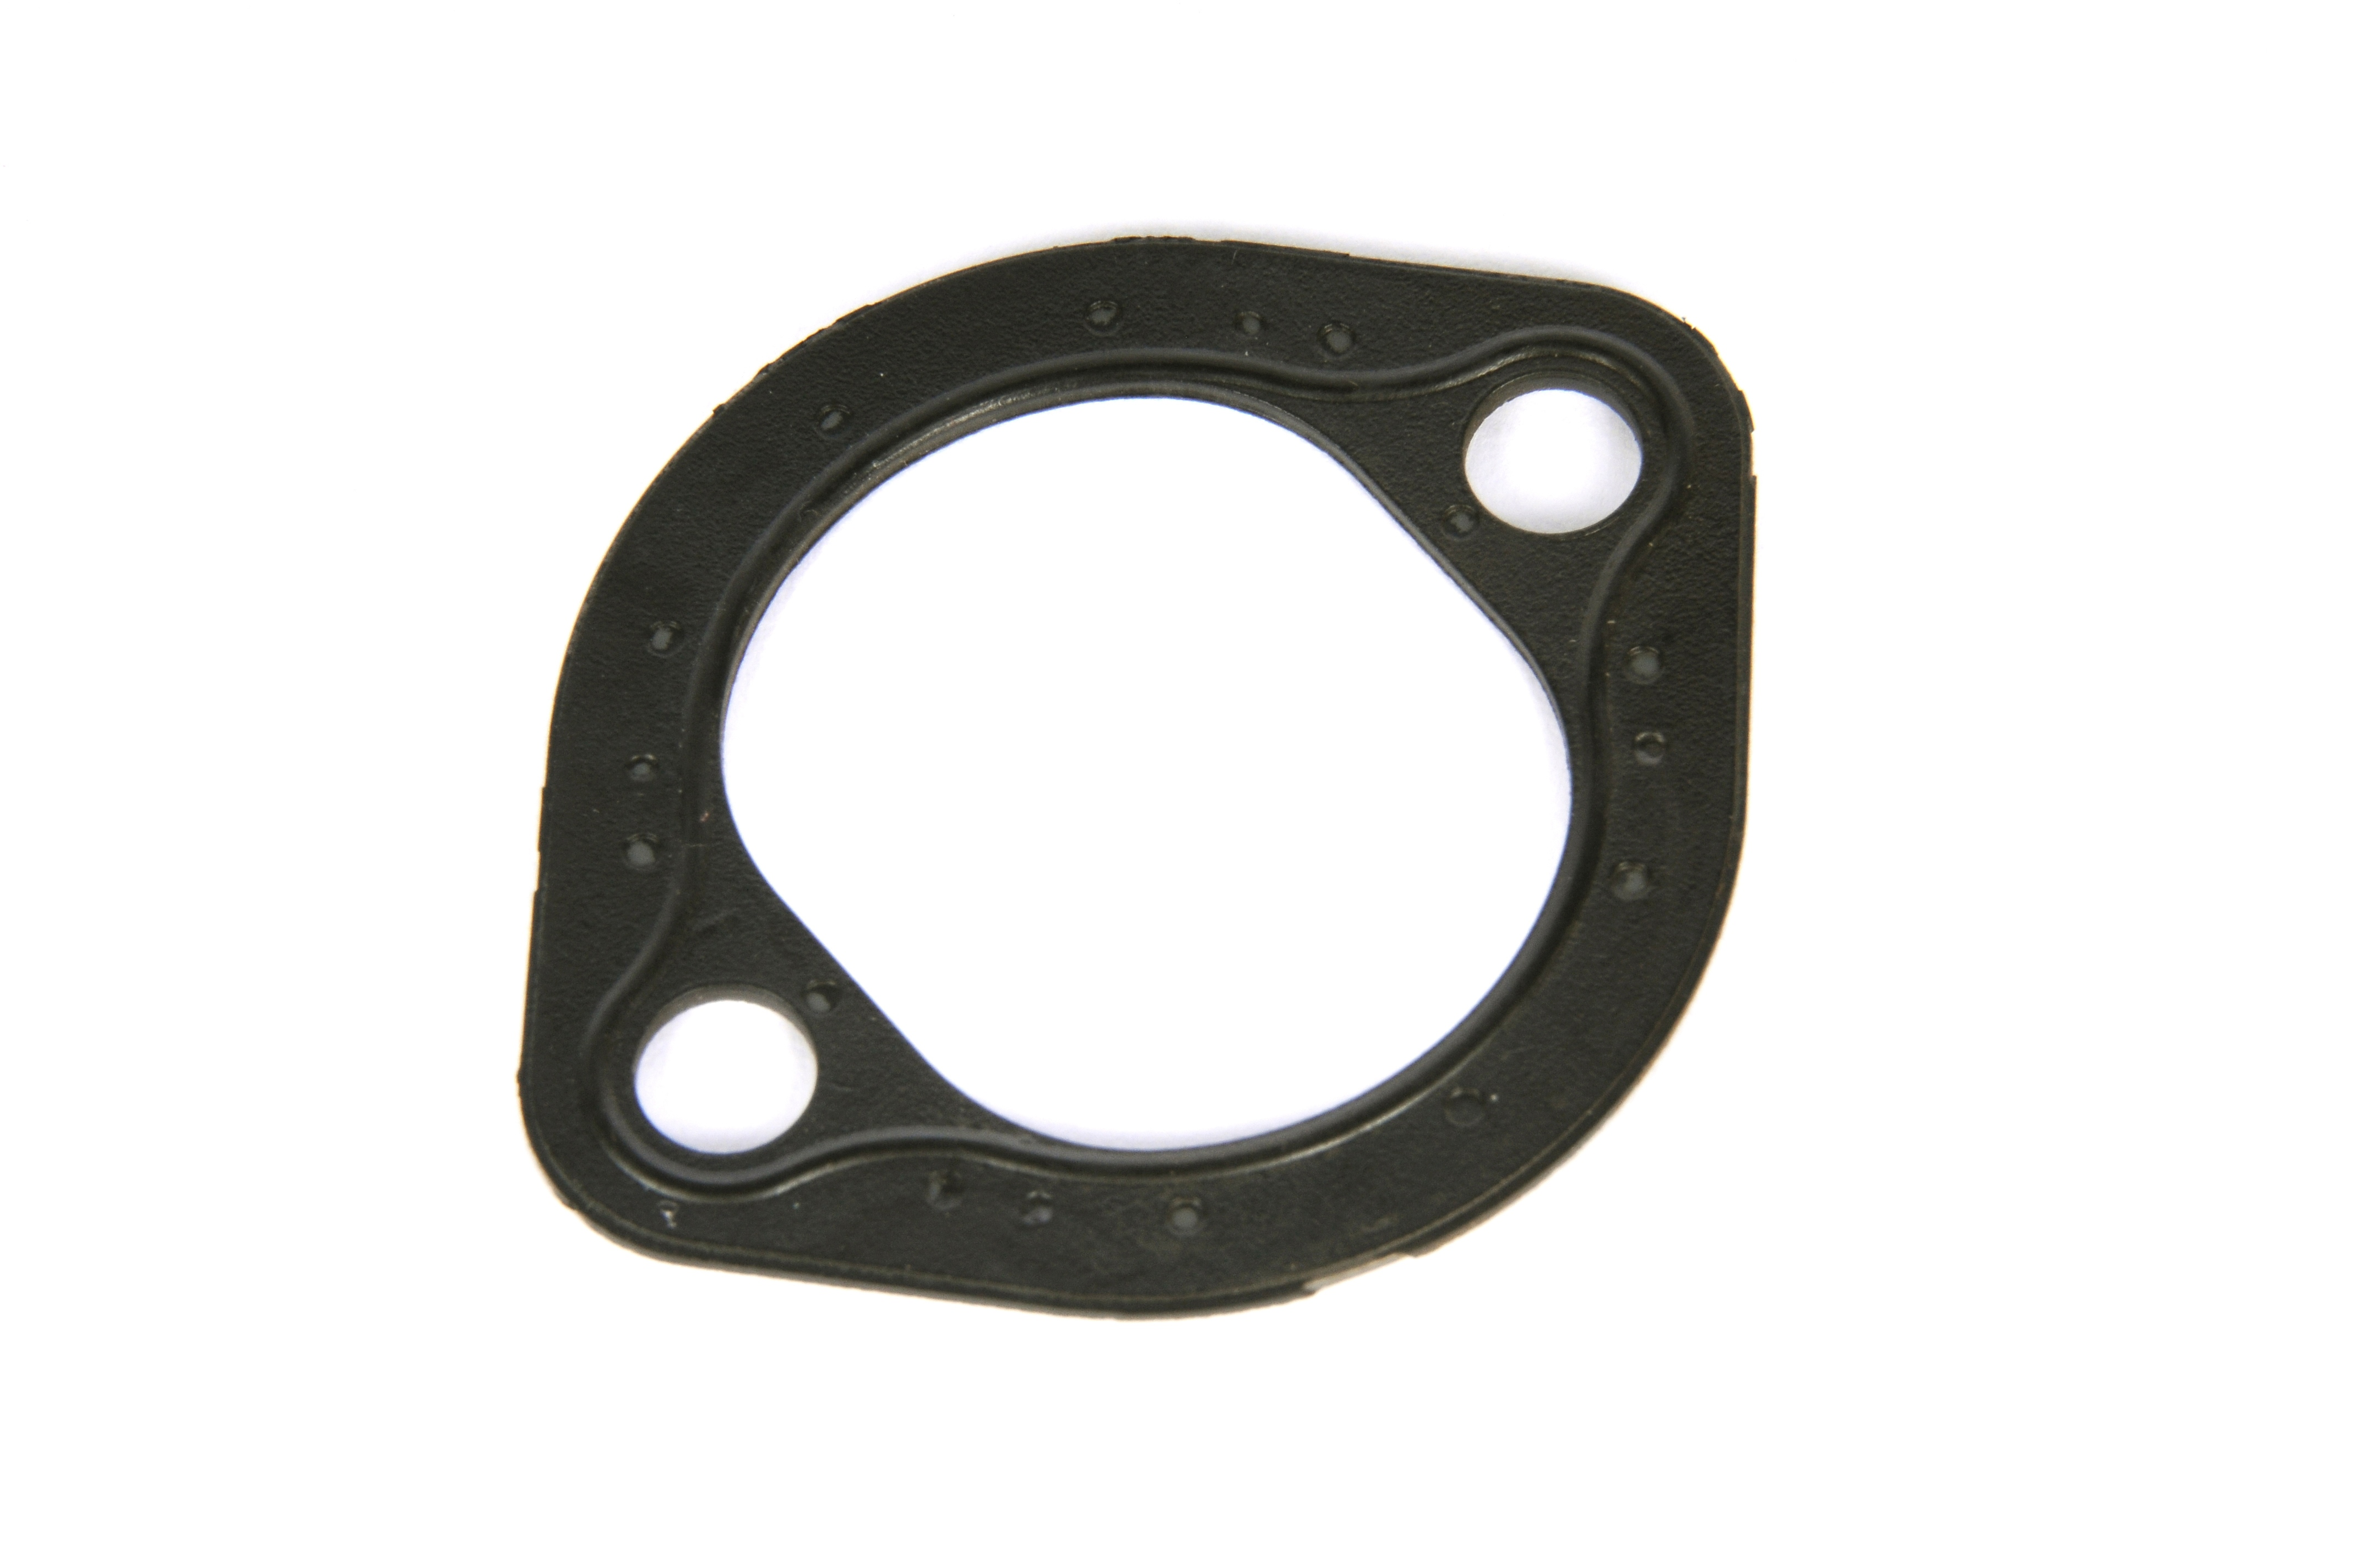 ACDELCO OE SERVICE - Steering King Pin Cap Gasket - DCB 15659403